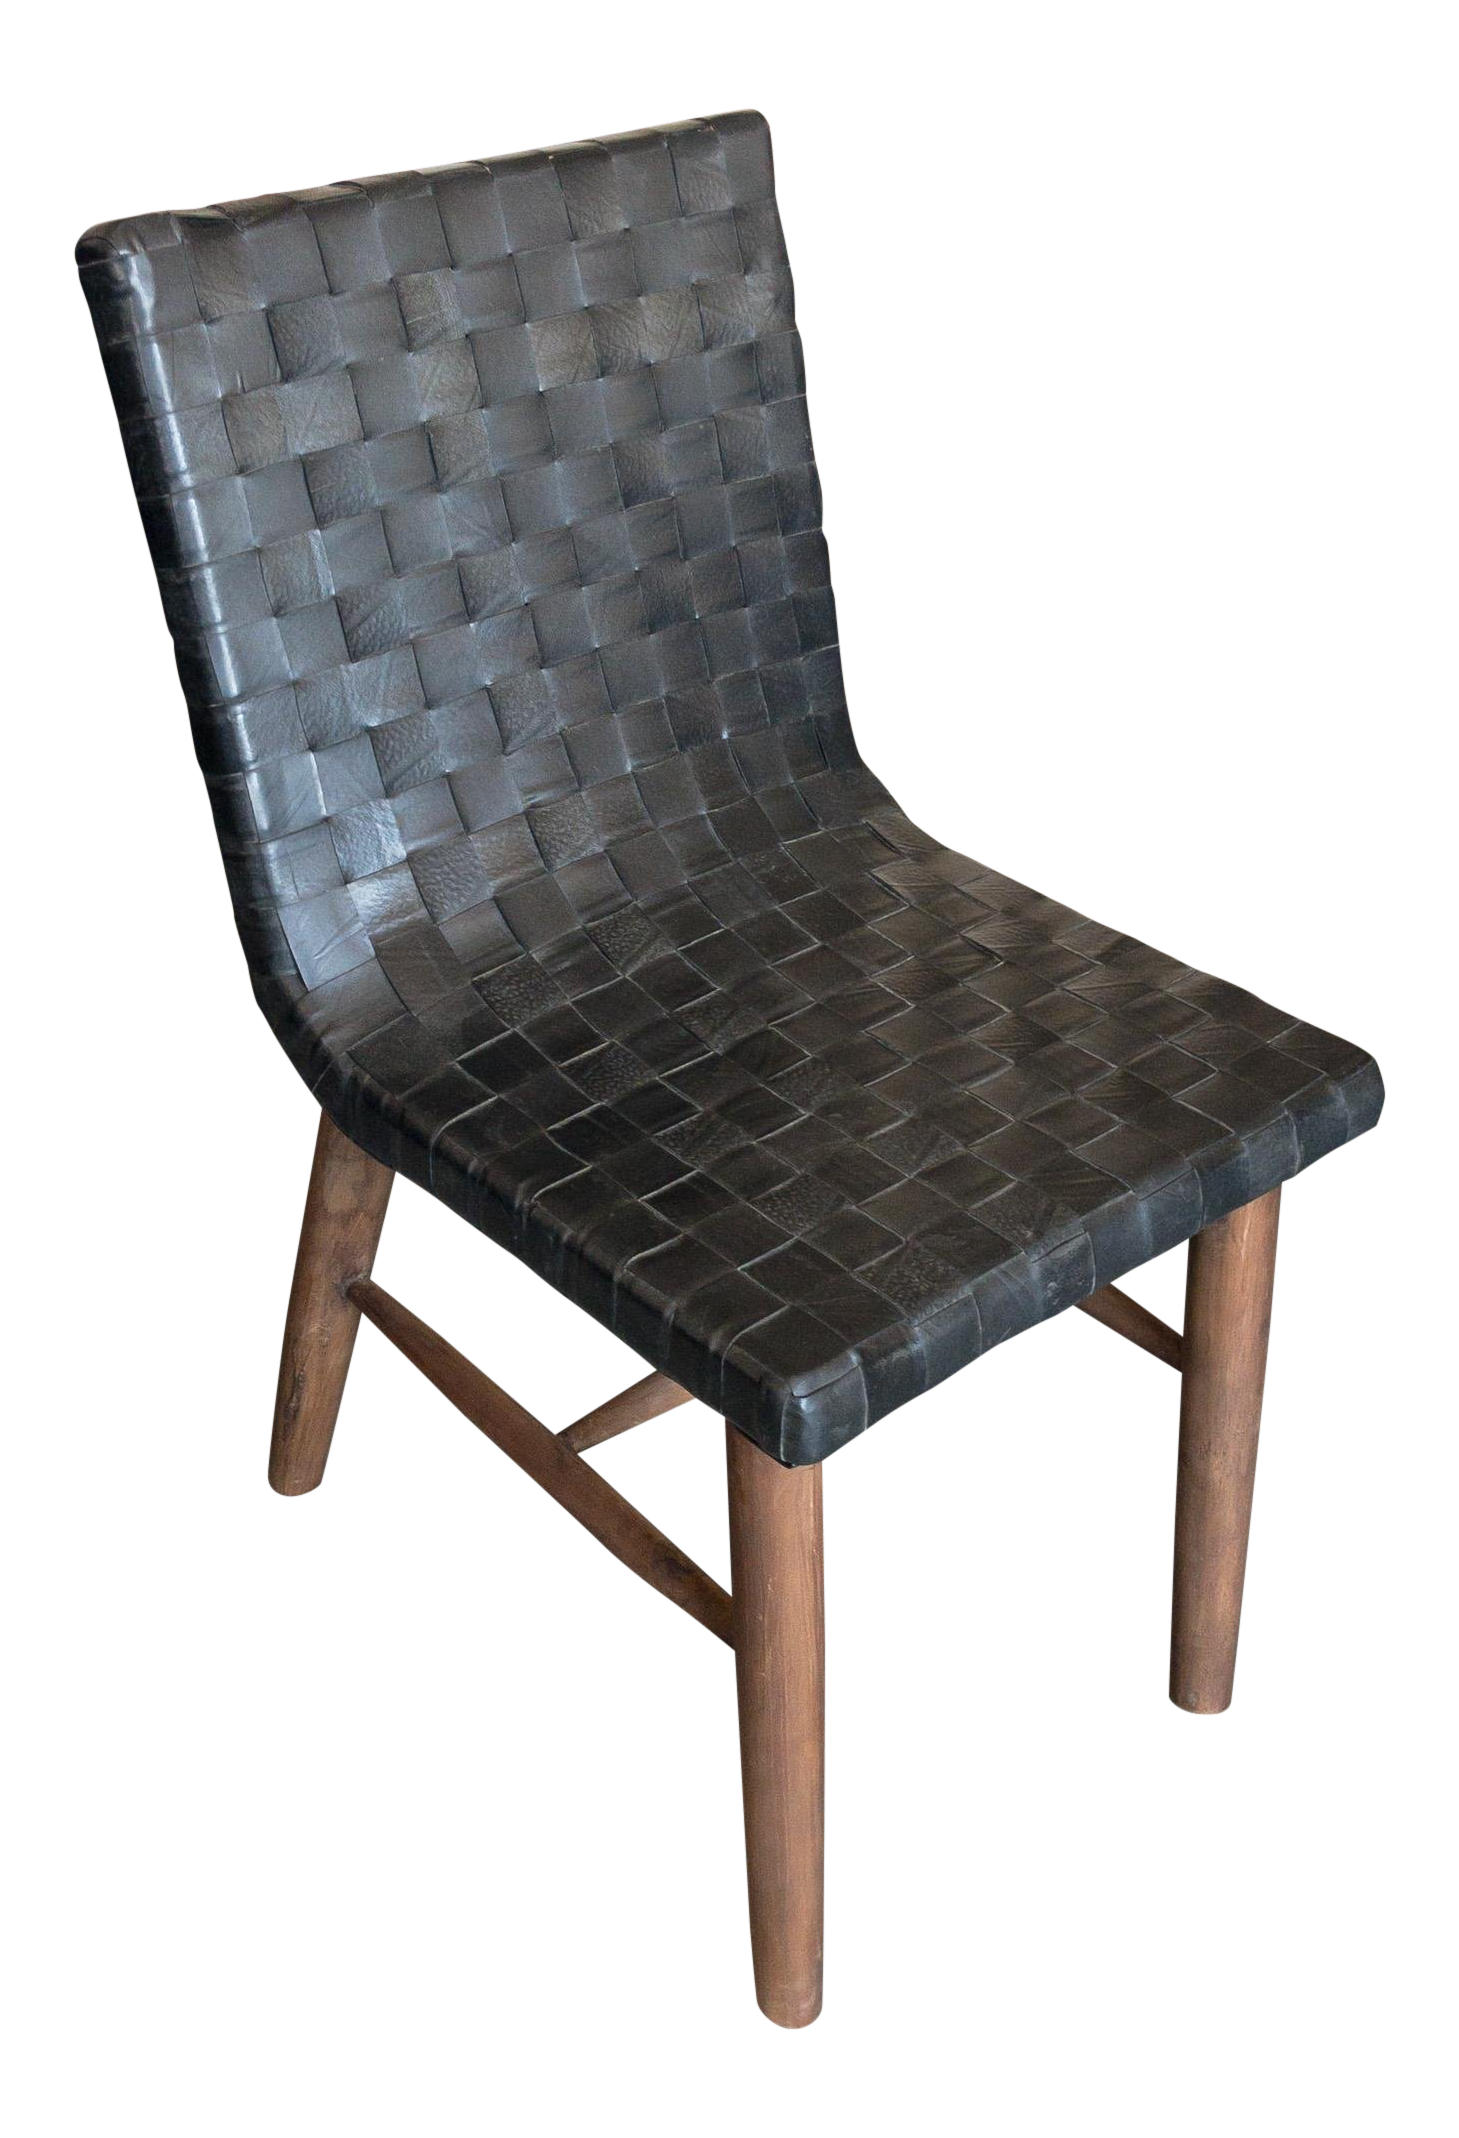 Recycled Tire U0026 Teak Chair